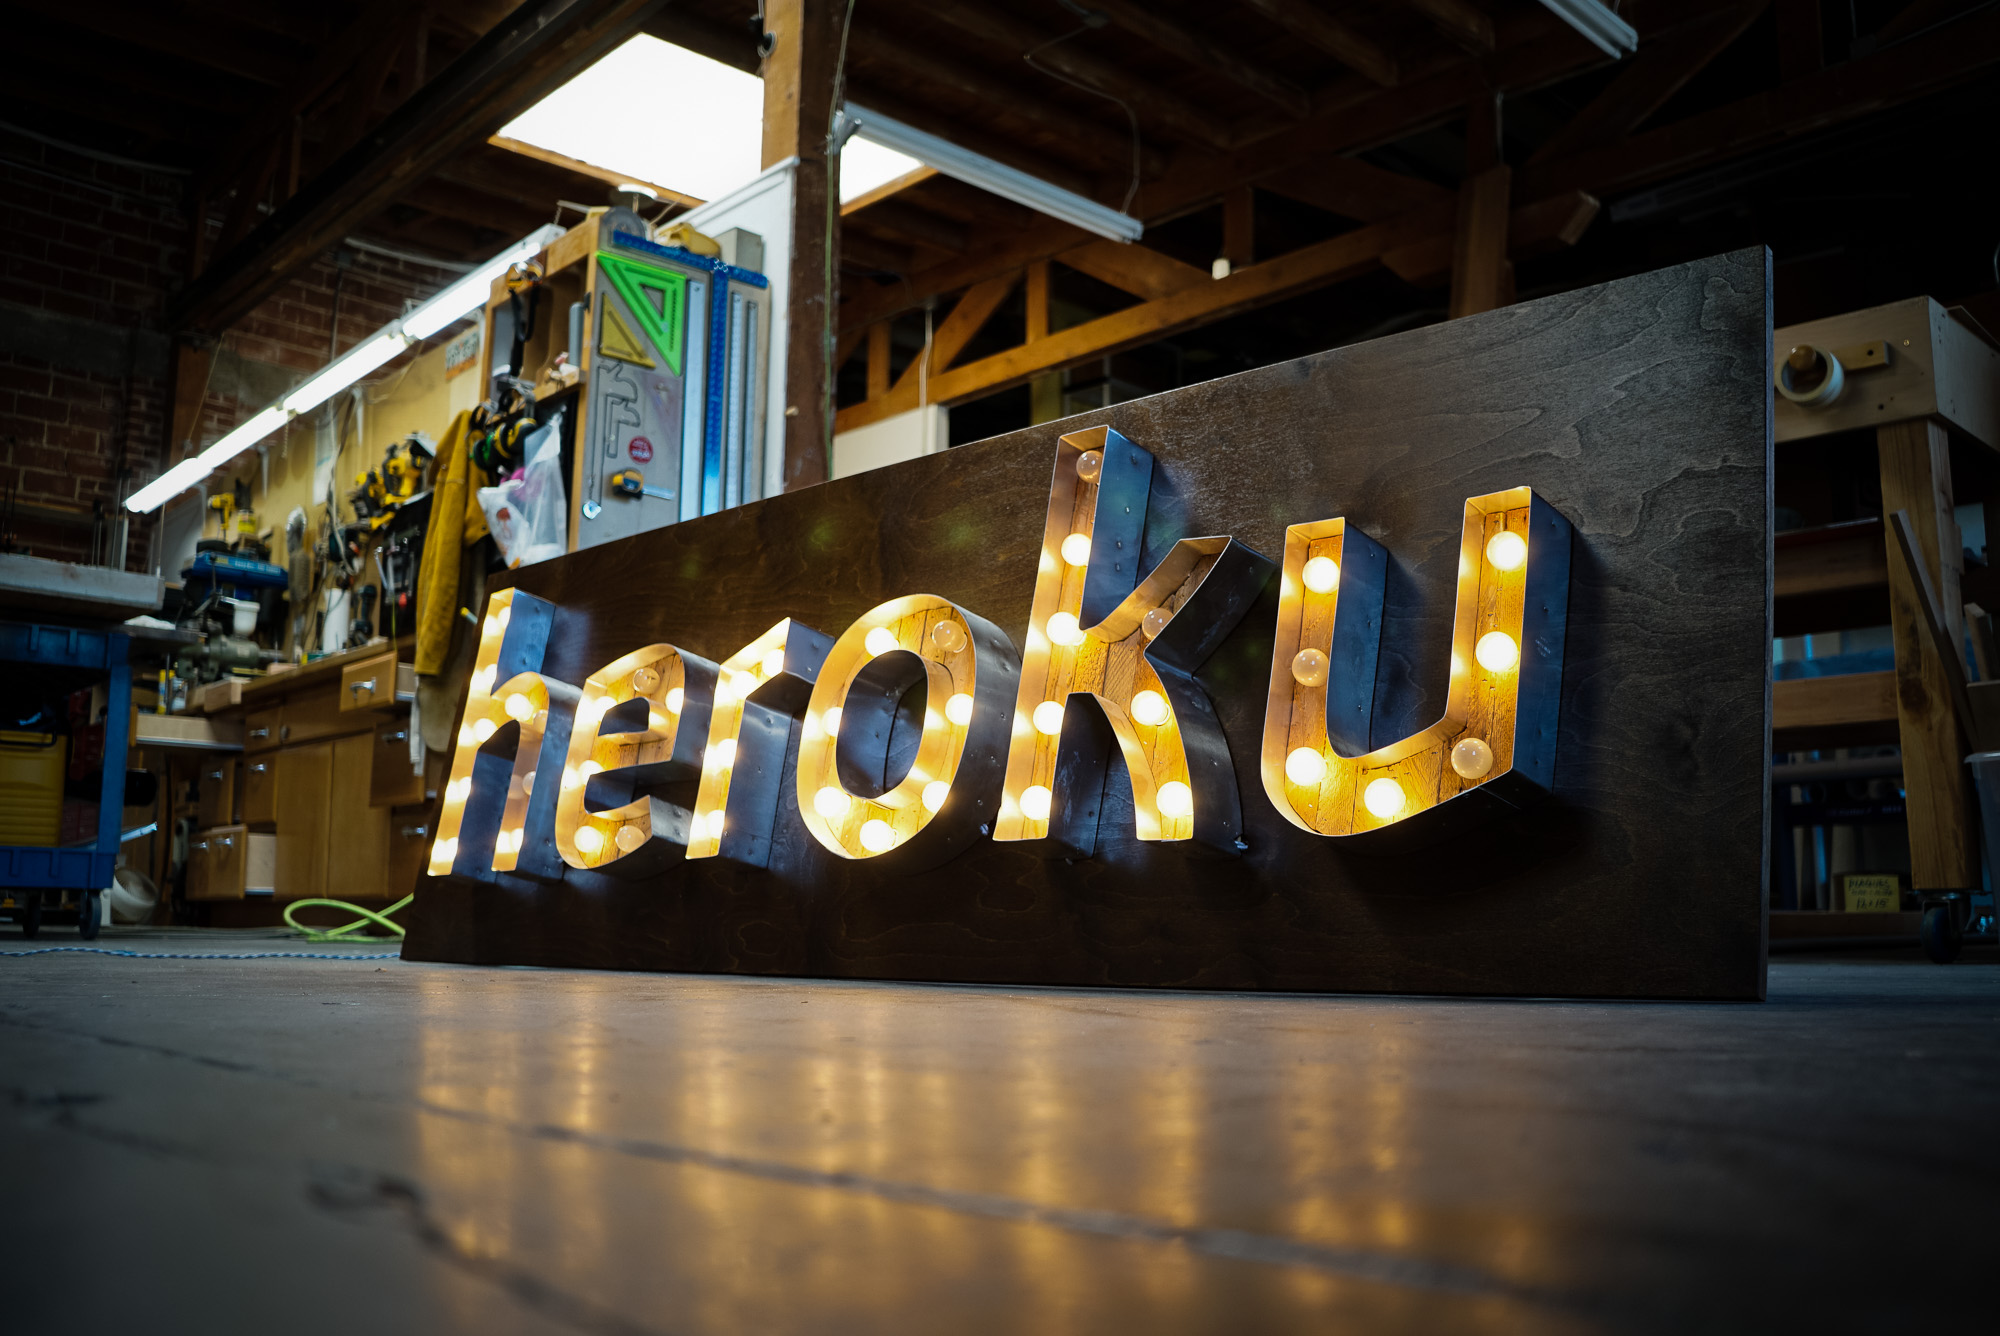 vintage / retro illuminated marquee sign with reclaimed wood and bulbs for tech / startup office, Heroku